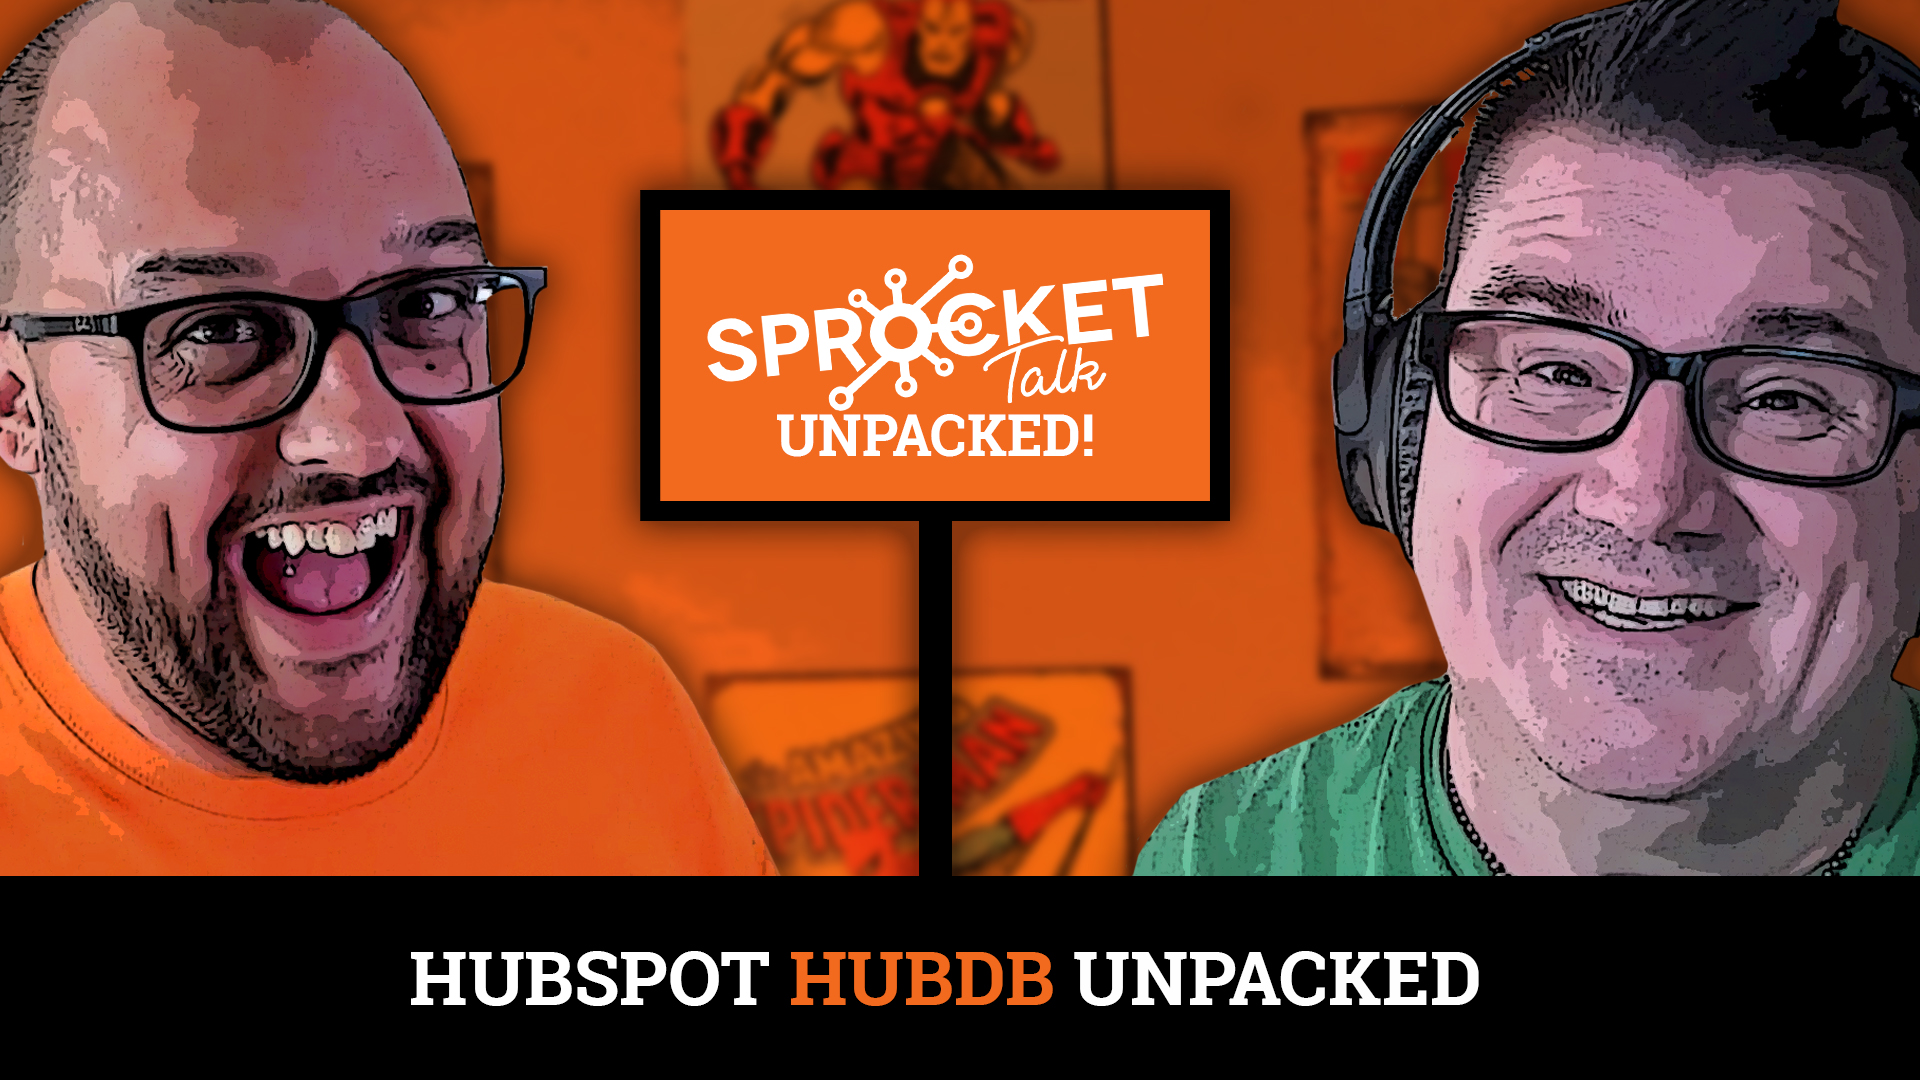 Sprocket Talk Unpacked HubDB as one of 5 hubspot hacks you didn't know you needed